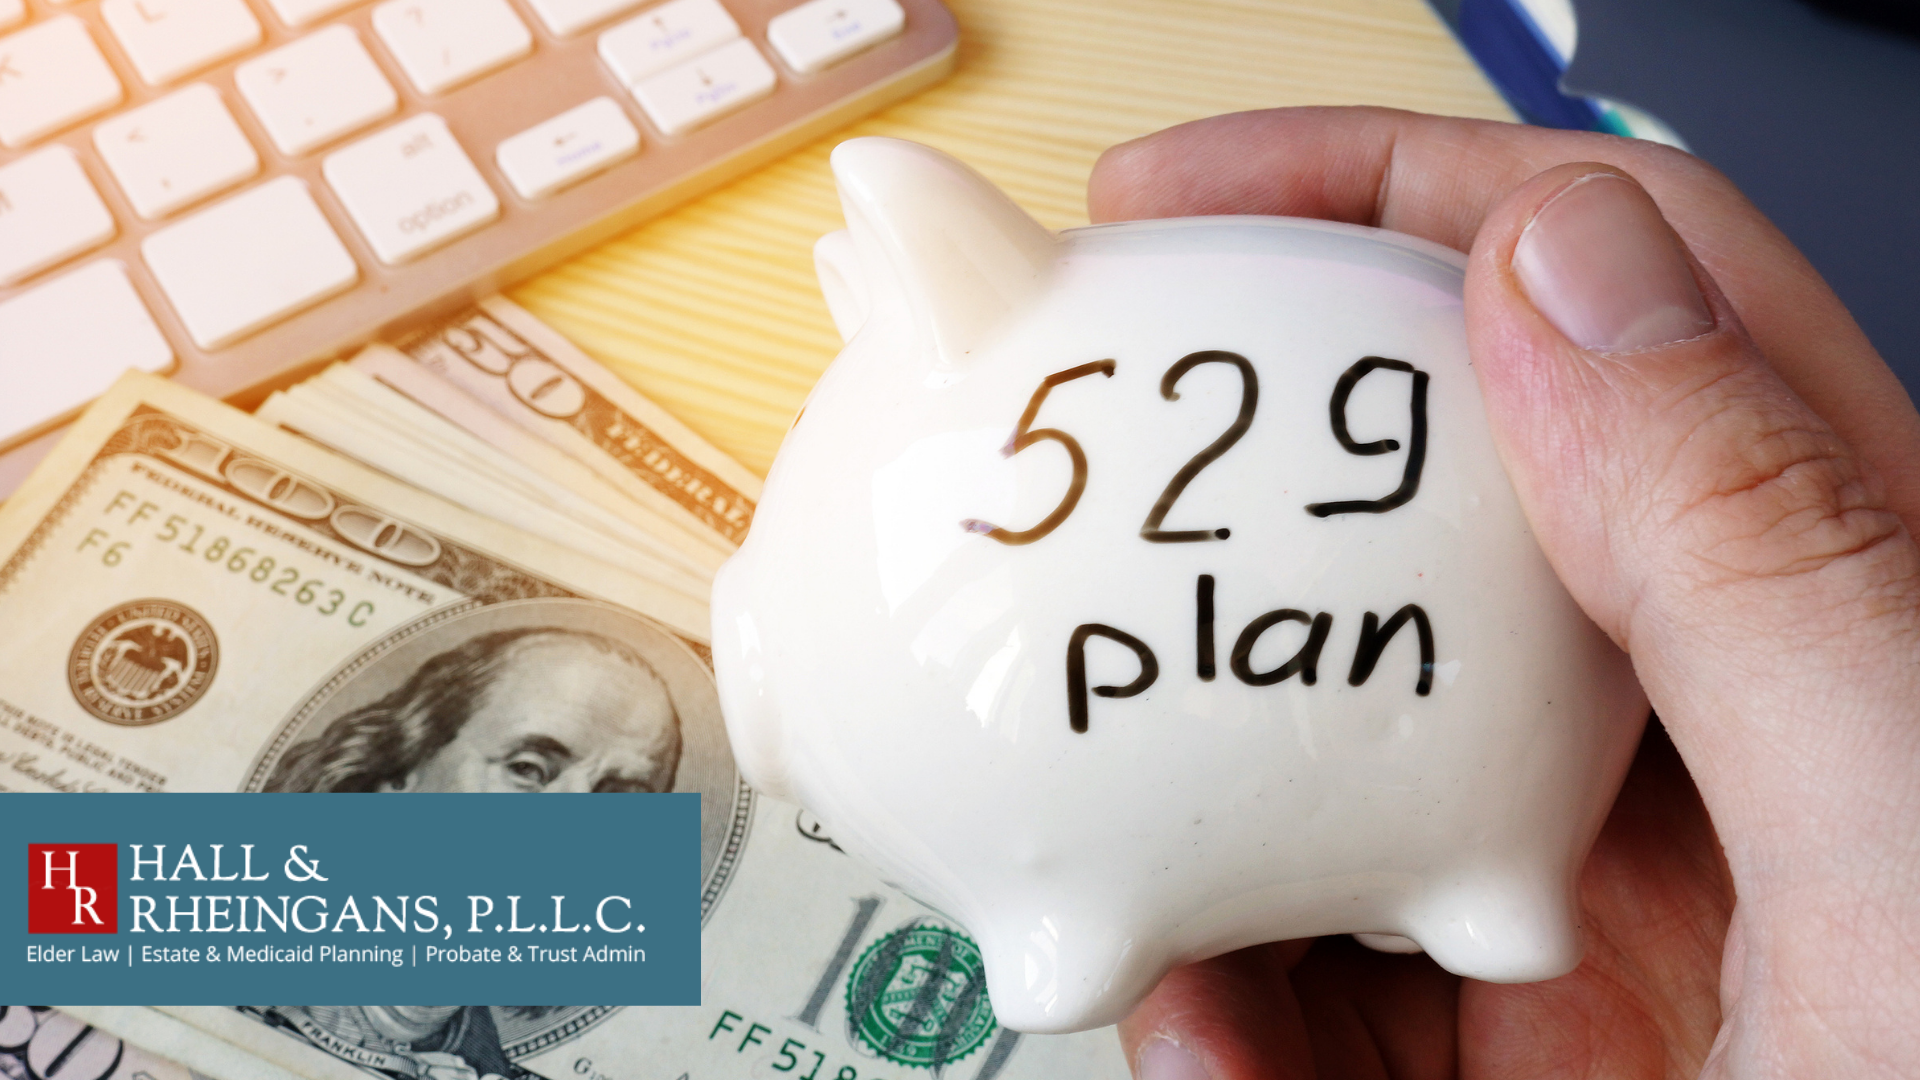 Using-529-Savings-Plan-as-an-Estate-Planning-Tool